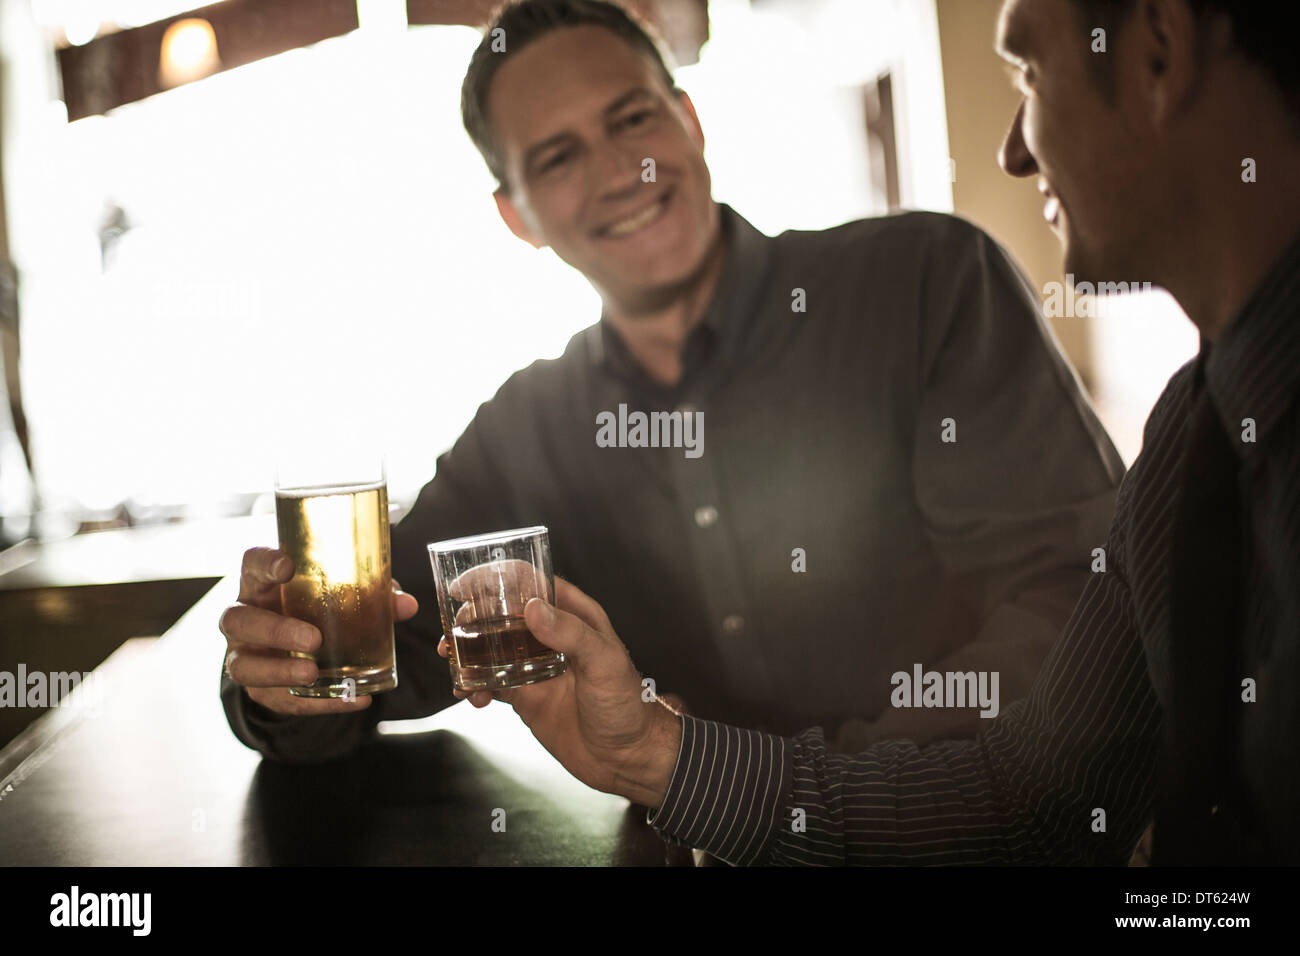 Deux hommes d'toasting boissons au bar Photo Stock